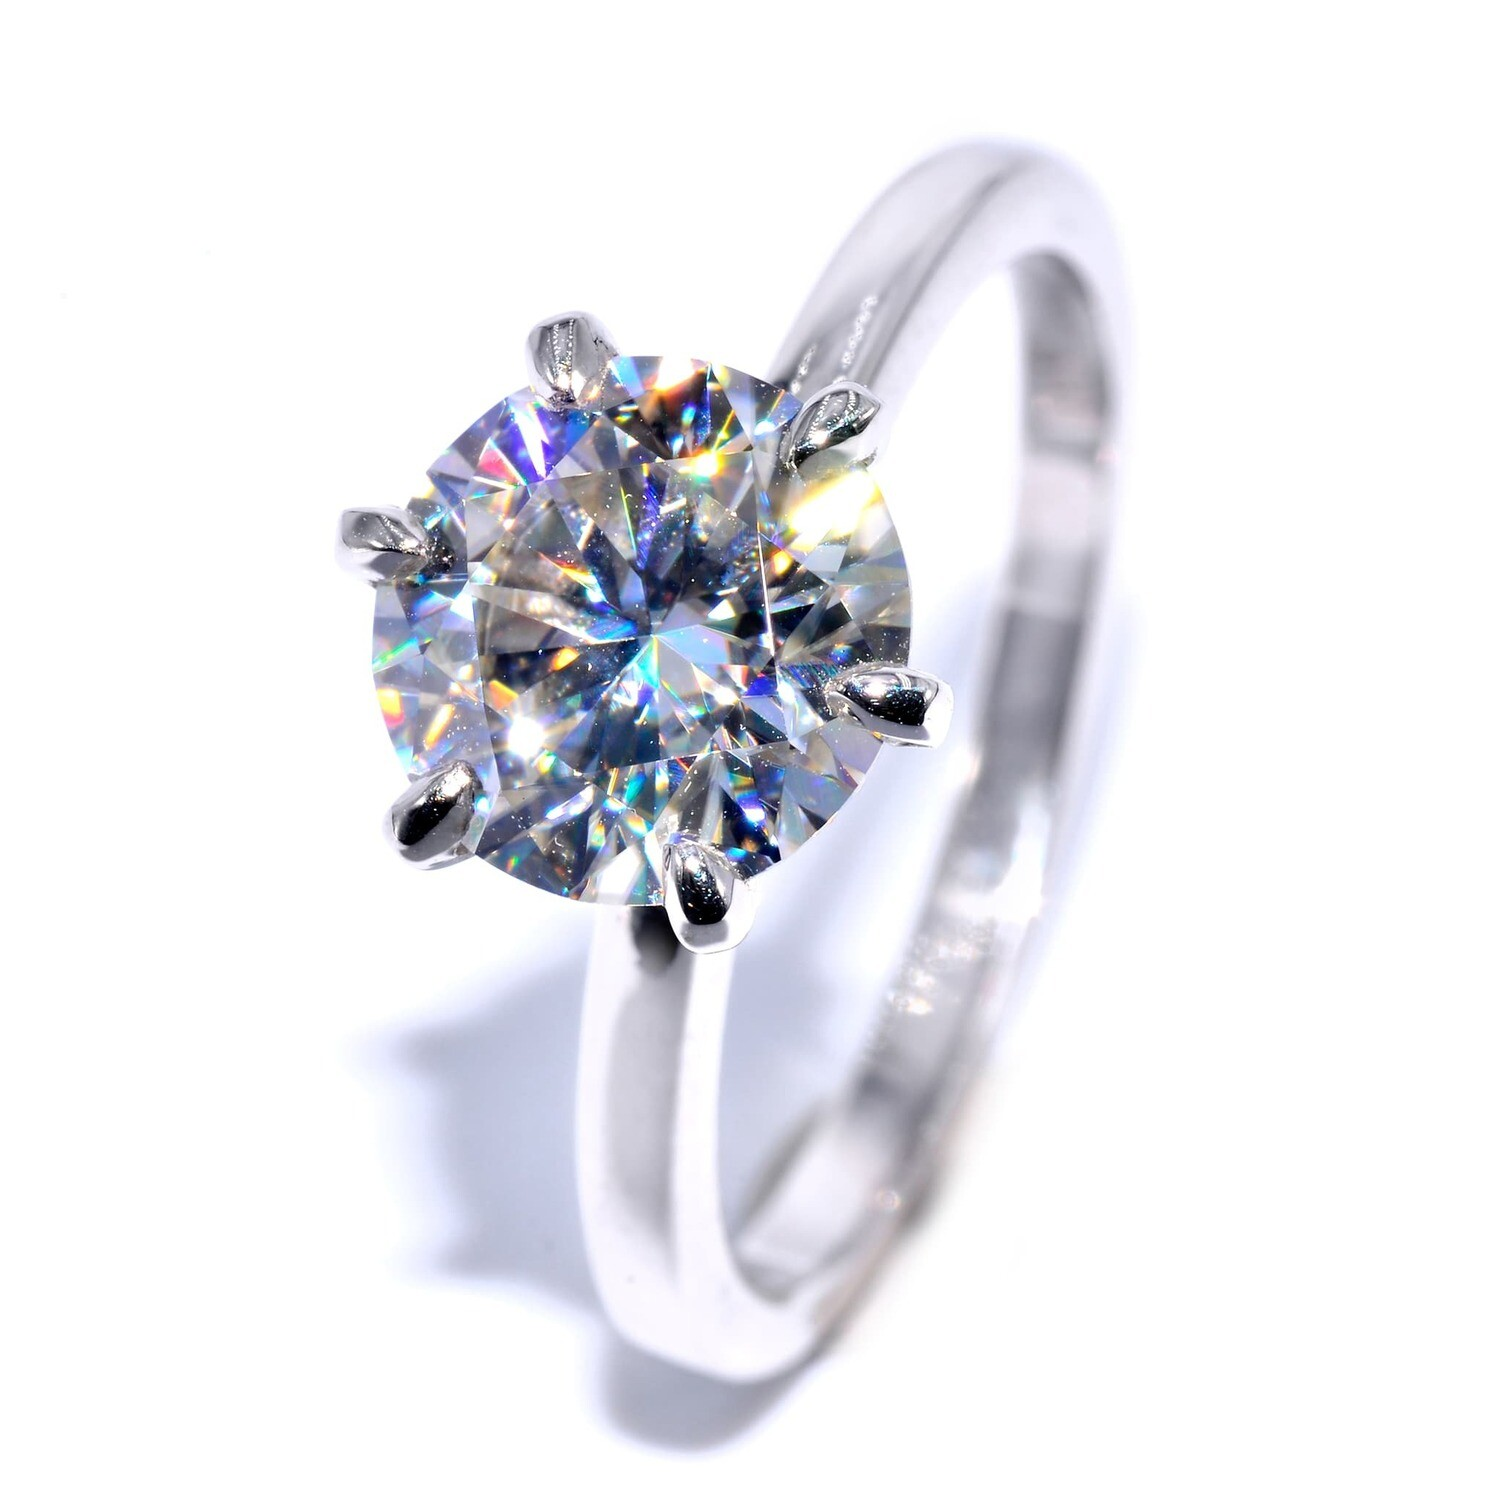 [High Setting] Handmade Moissanite Solitaire Wedding Ring for Women with 2.00 carat (8.5 mm diameter) VVS1 D Brilliant Round Cut